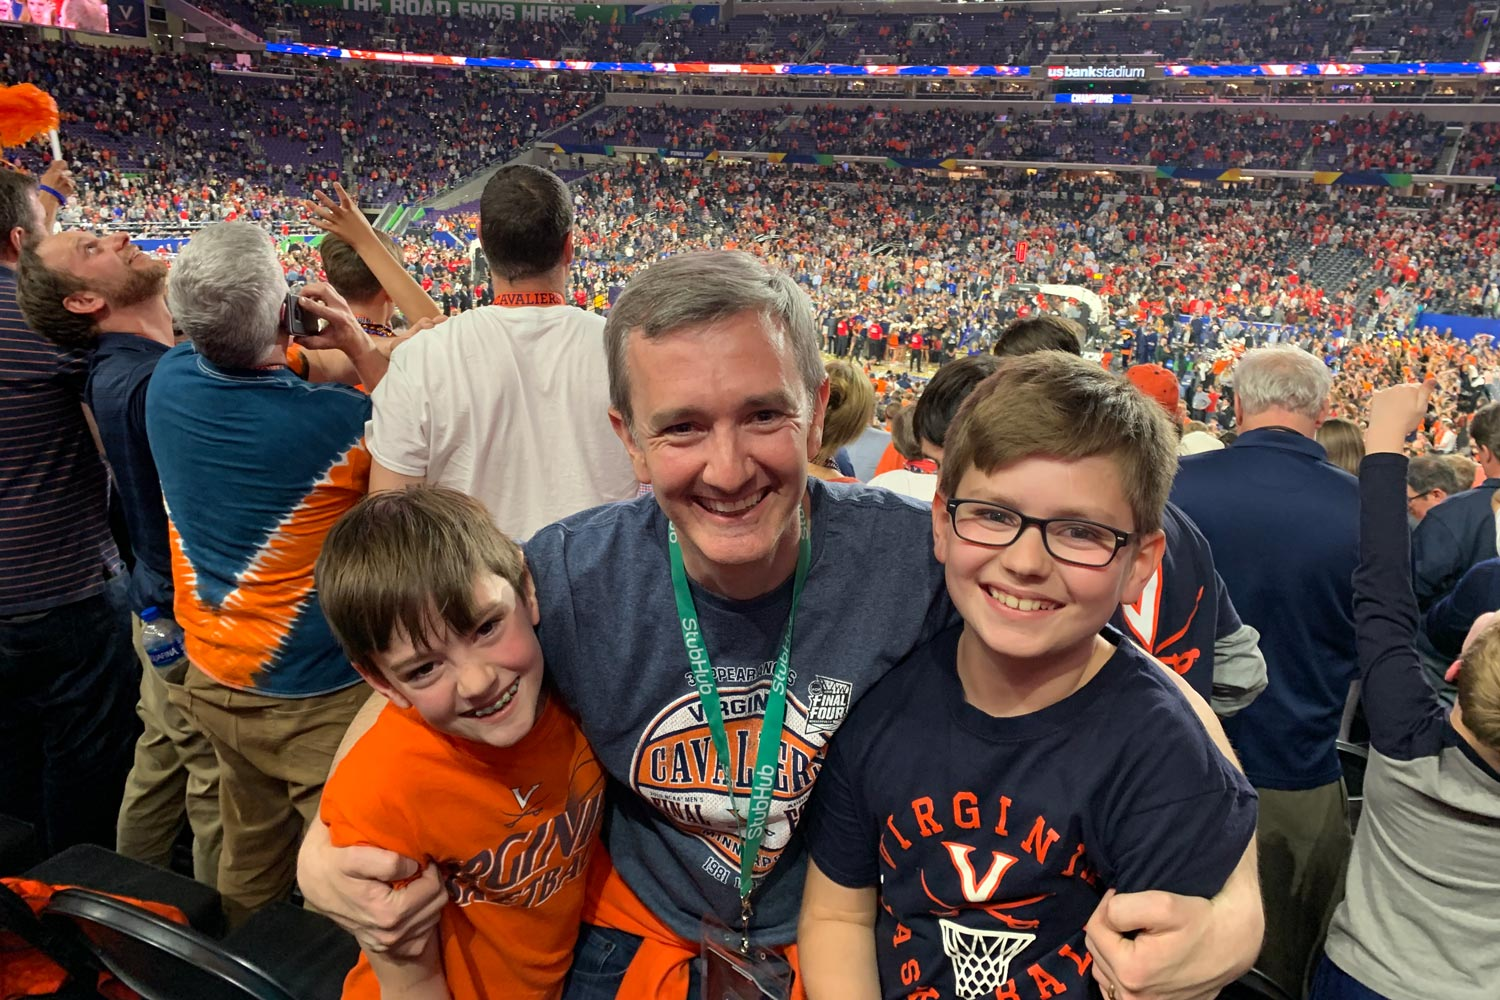 Alumnus Chris Duffy, center, and his sons James and Henry paused for a photo after the confetti rained down. (Contributed photo)